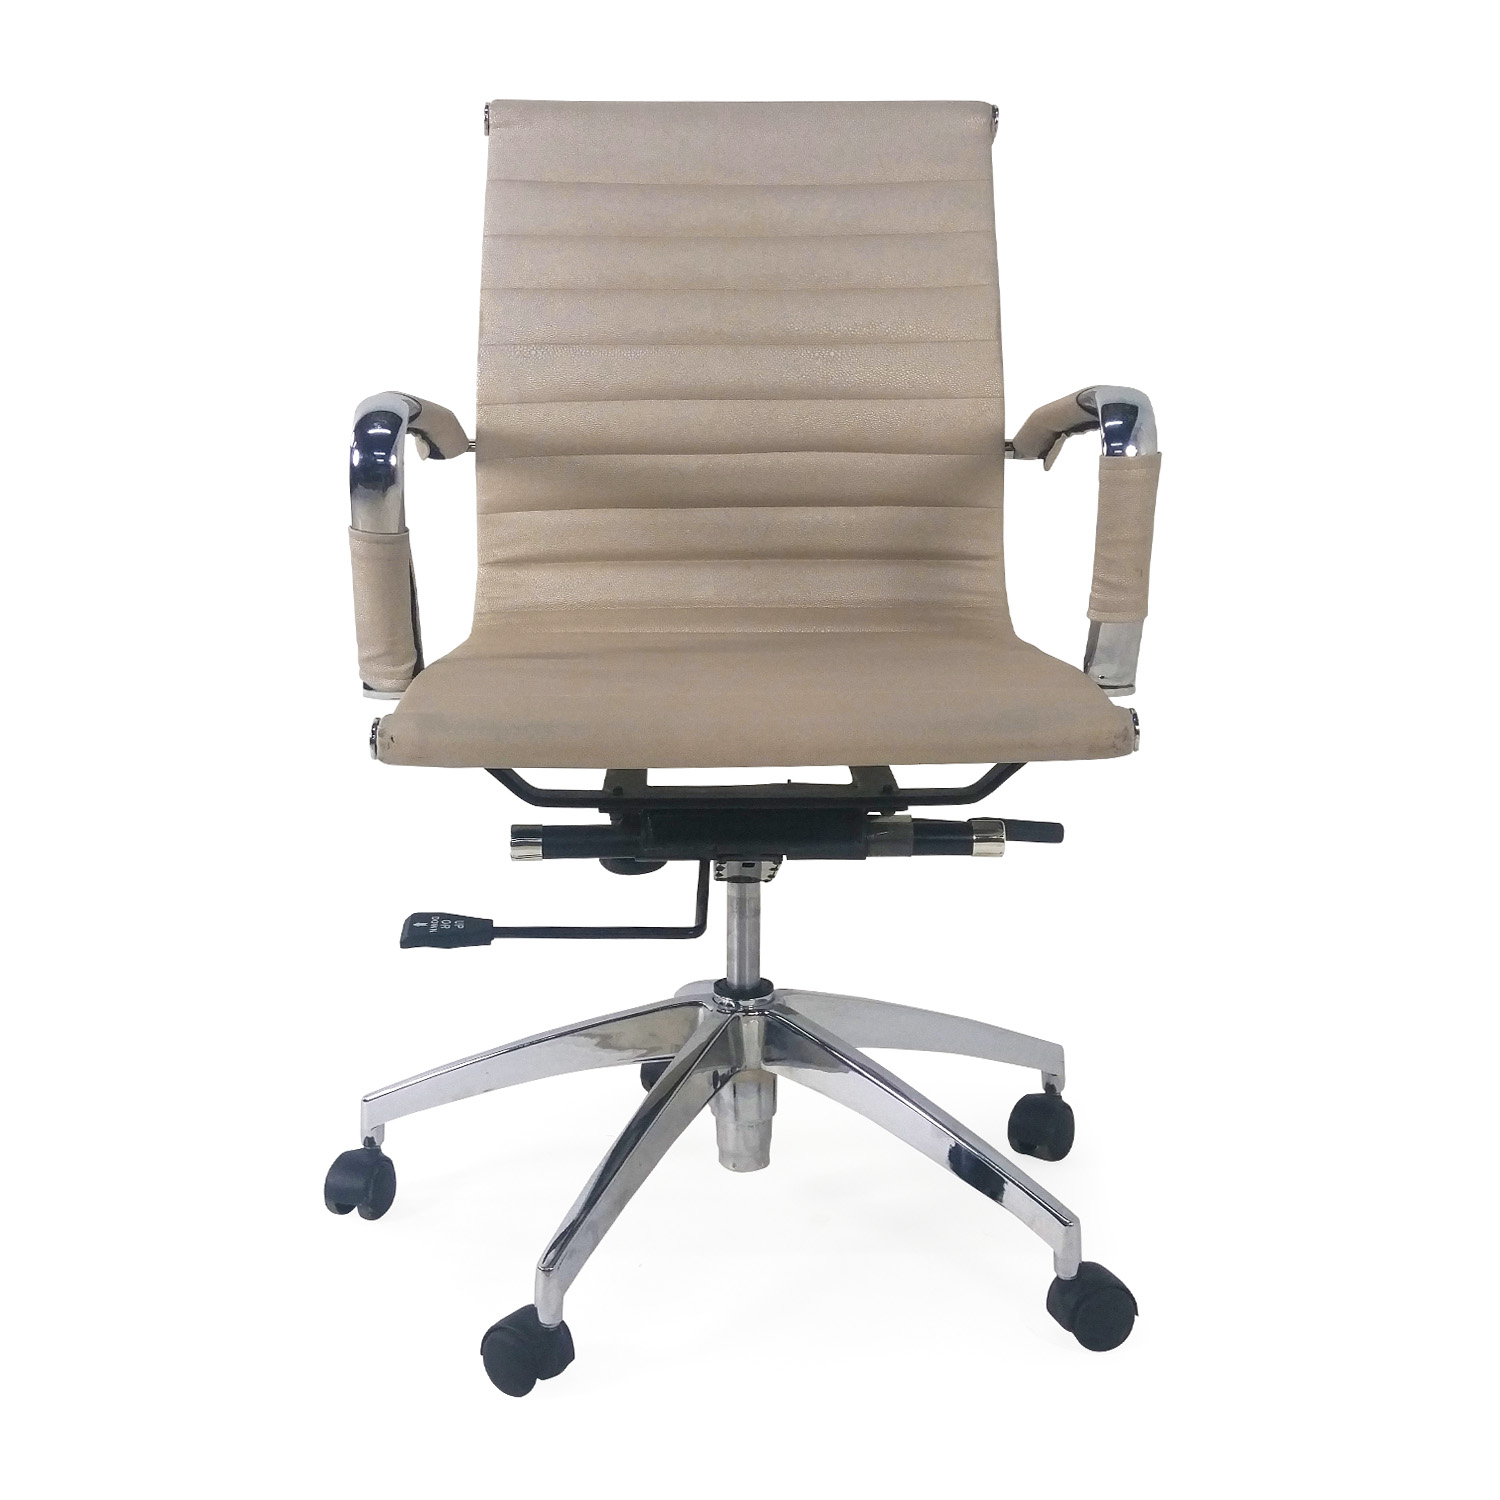 Rolling Desk Chairs 71 Off Adjustable Black Office Desk Chair Chairs